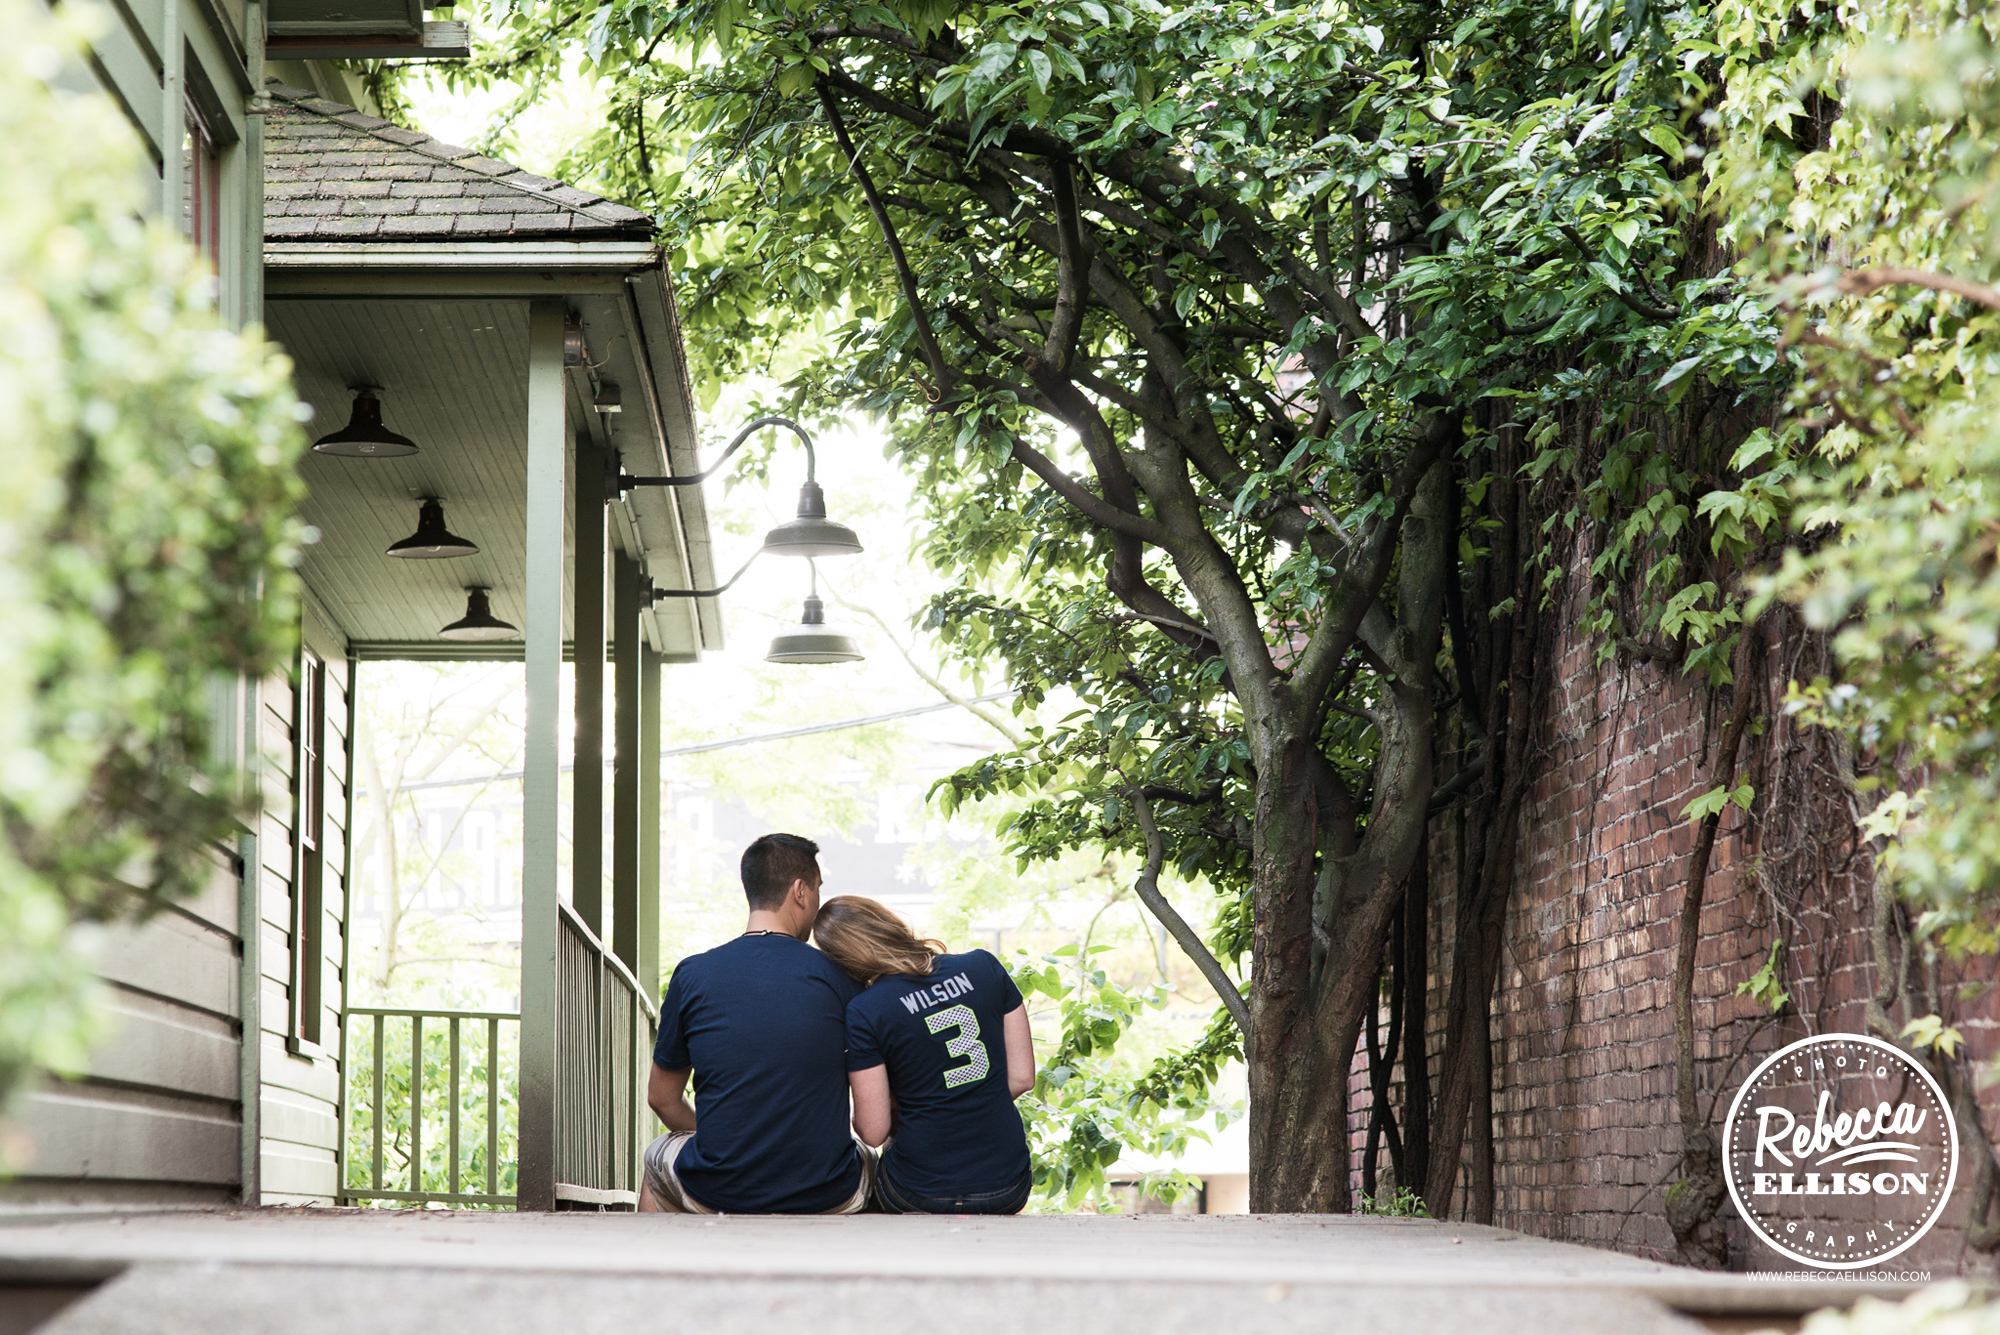 An engaged couple wearing Seahawks t-shirts sits on their porch during an outdoor rural engagement session photographed by Rebecca Ellison photography